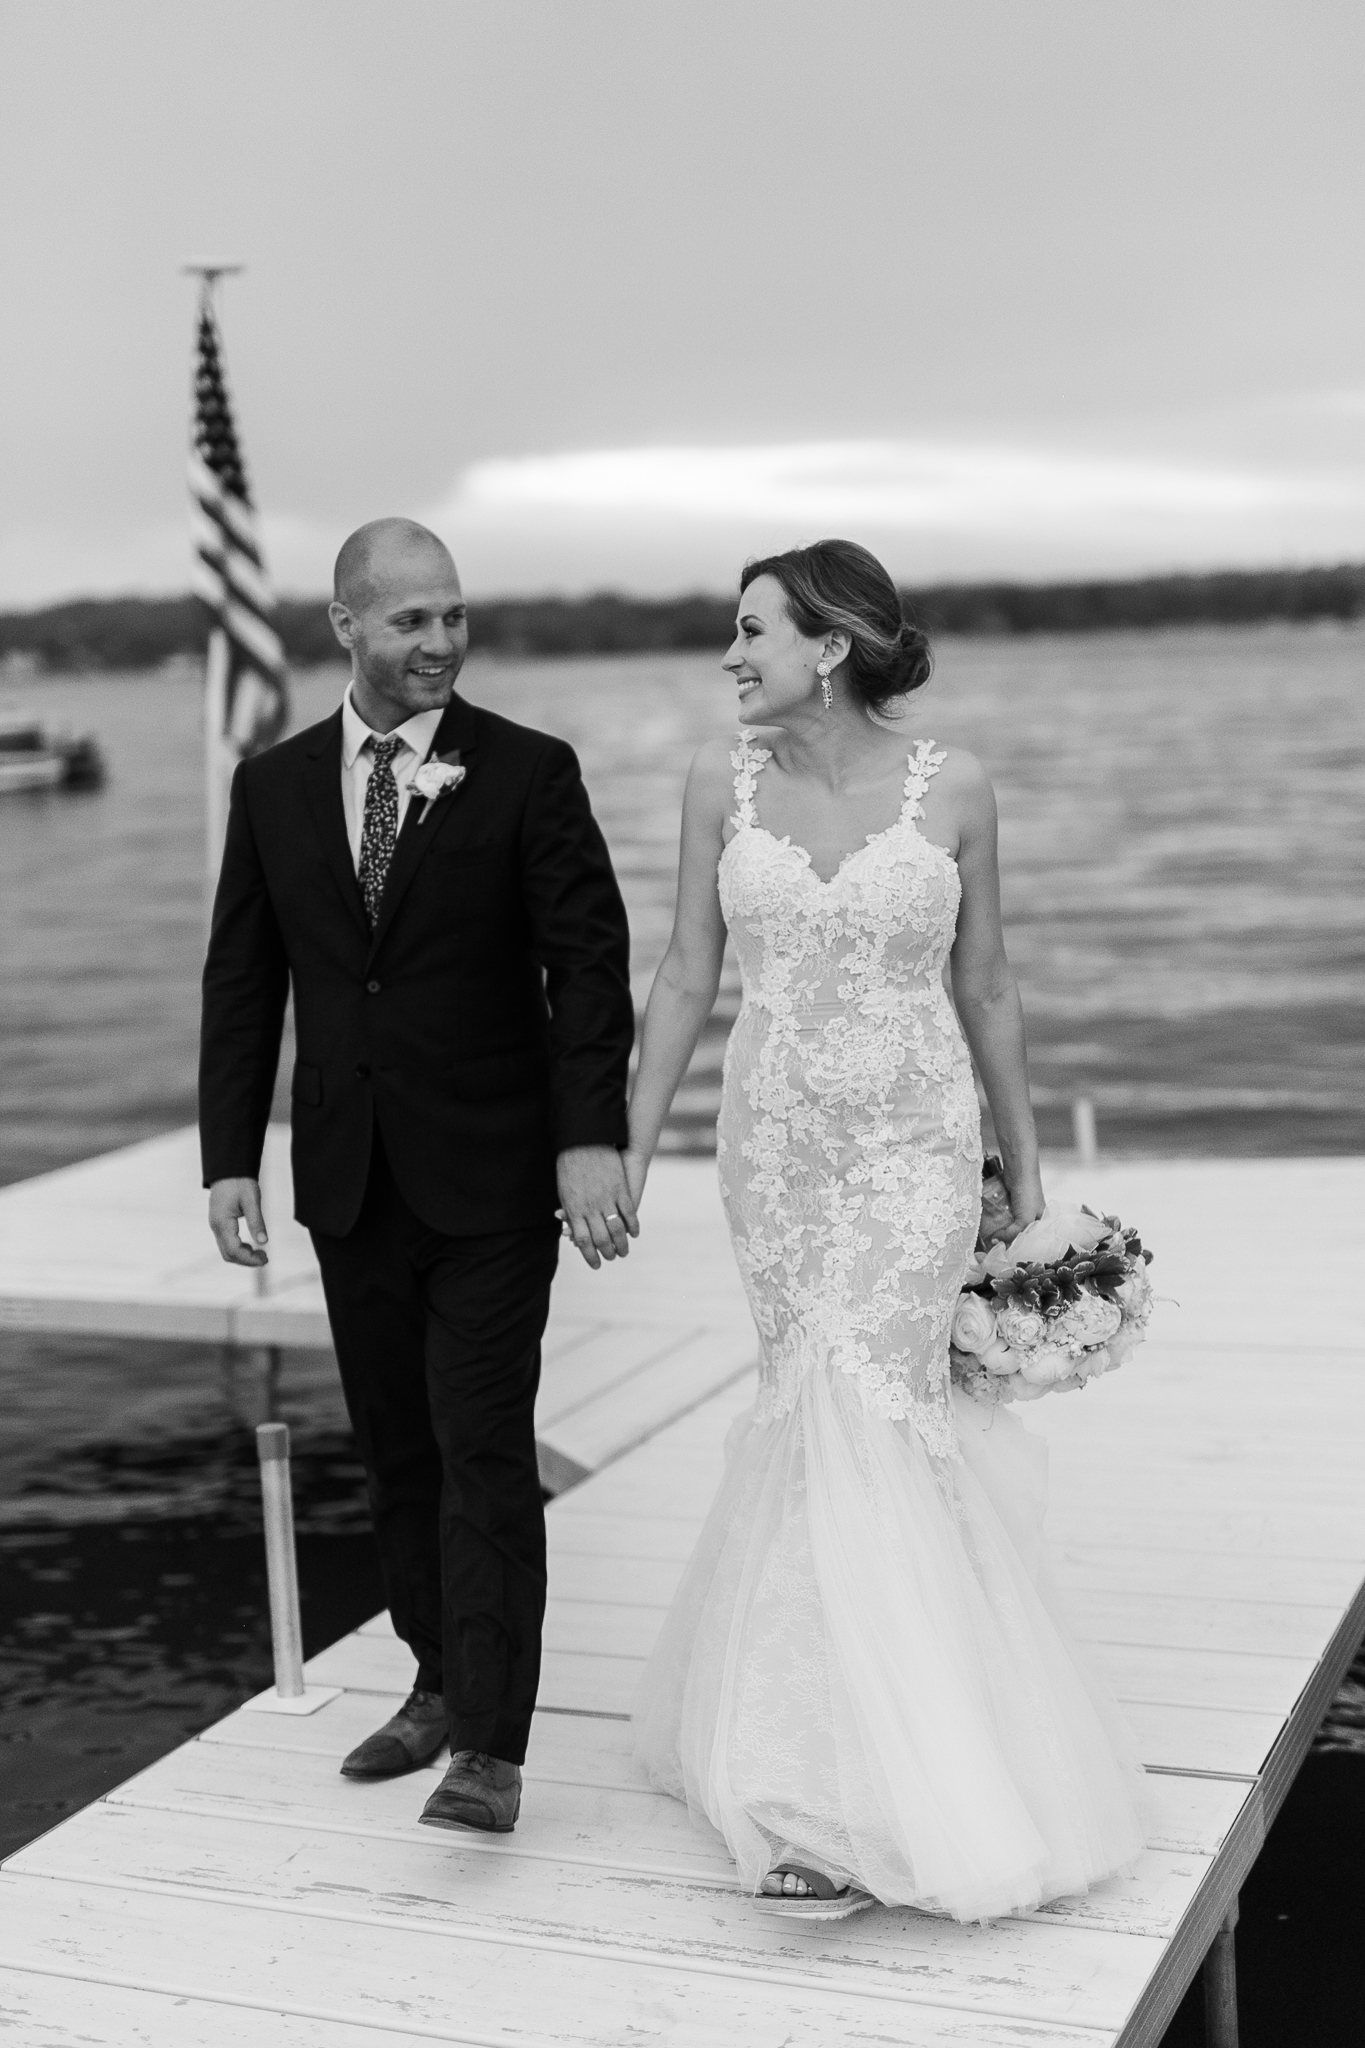 Backyard-Wisconsin-Lake-wedding_192.jpg